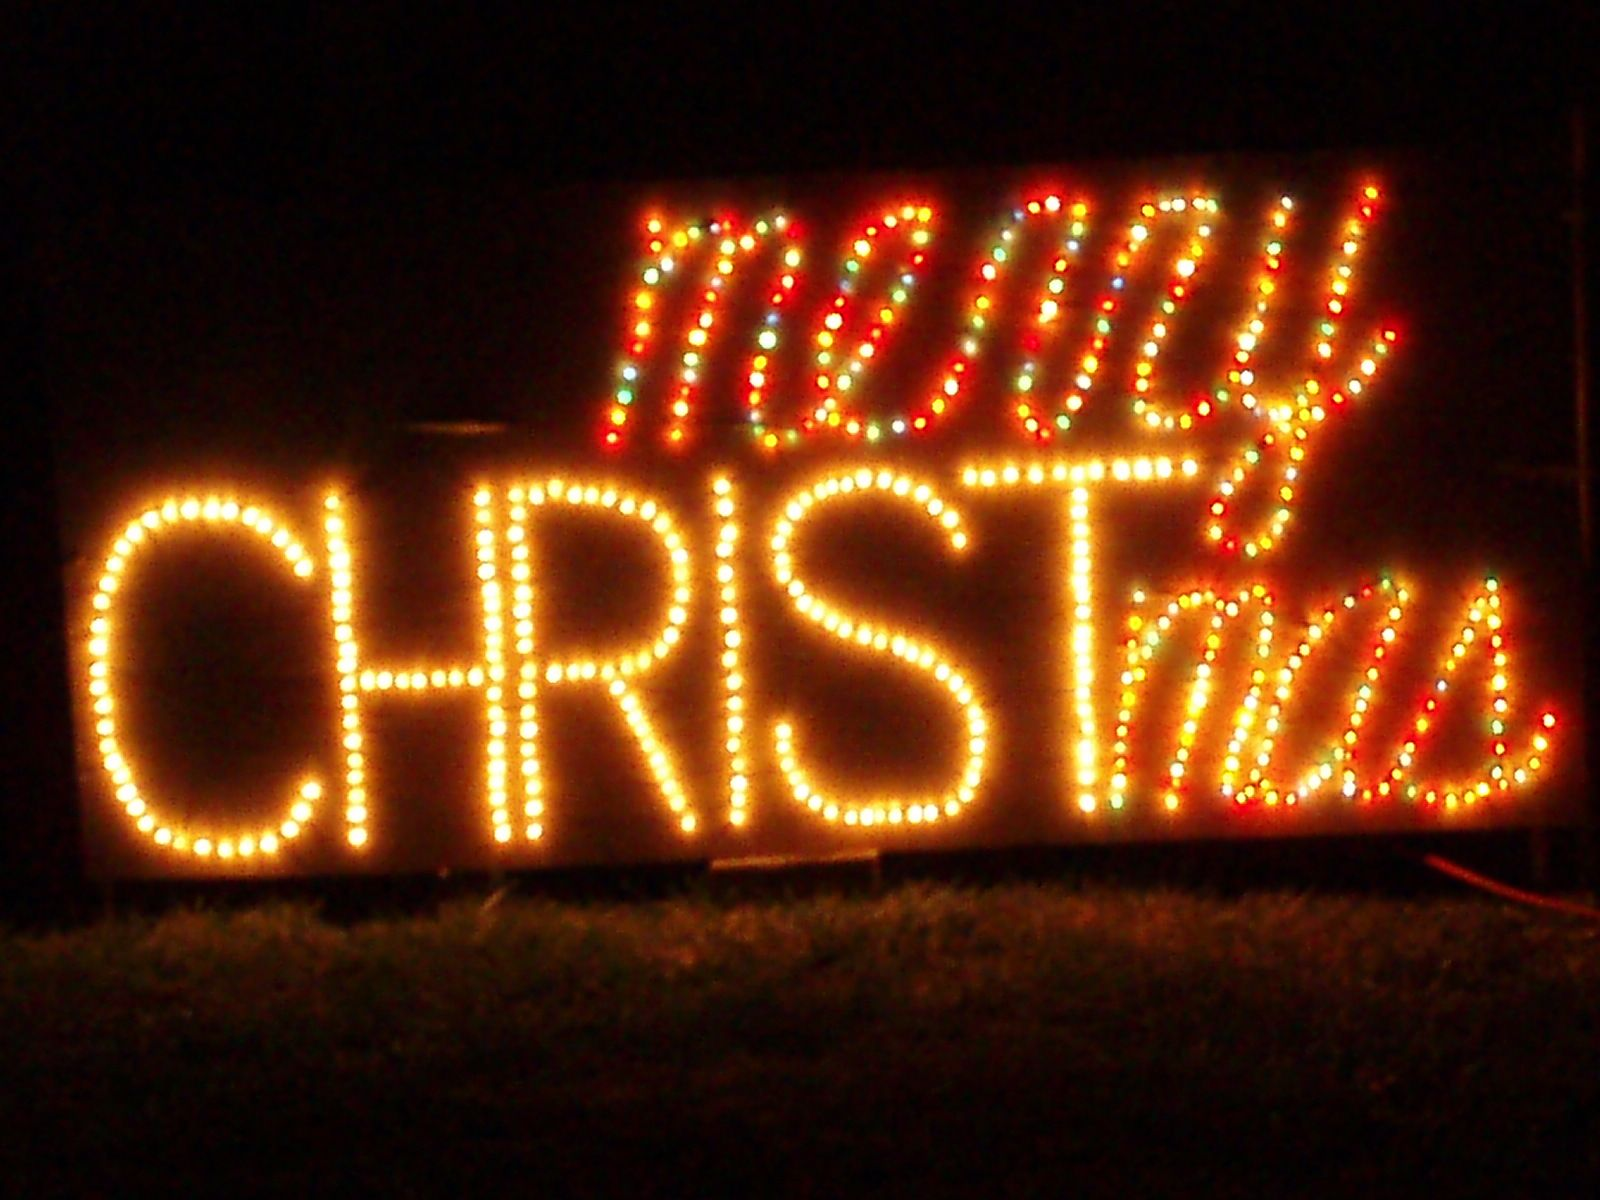 Merry Christmas Sign One Of My Favorite Christmas Lights Decorations For The Front Yar Decorating With Christmas Lights Merry Christmas Sign Christmas Lights